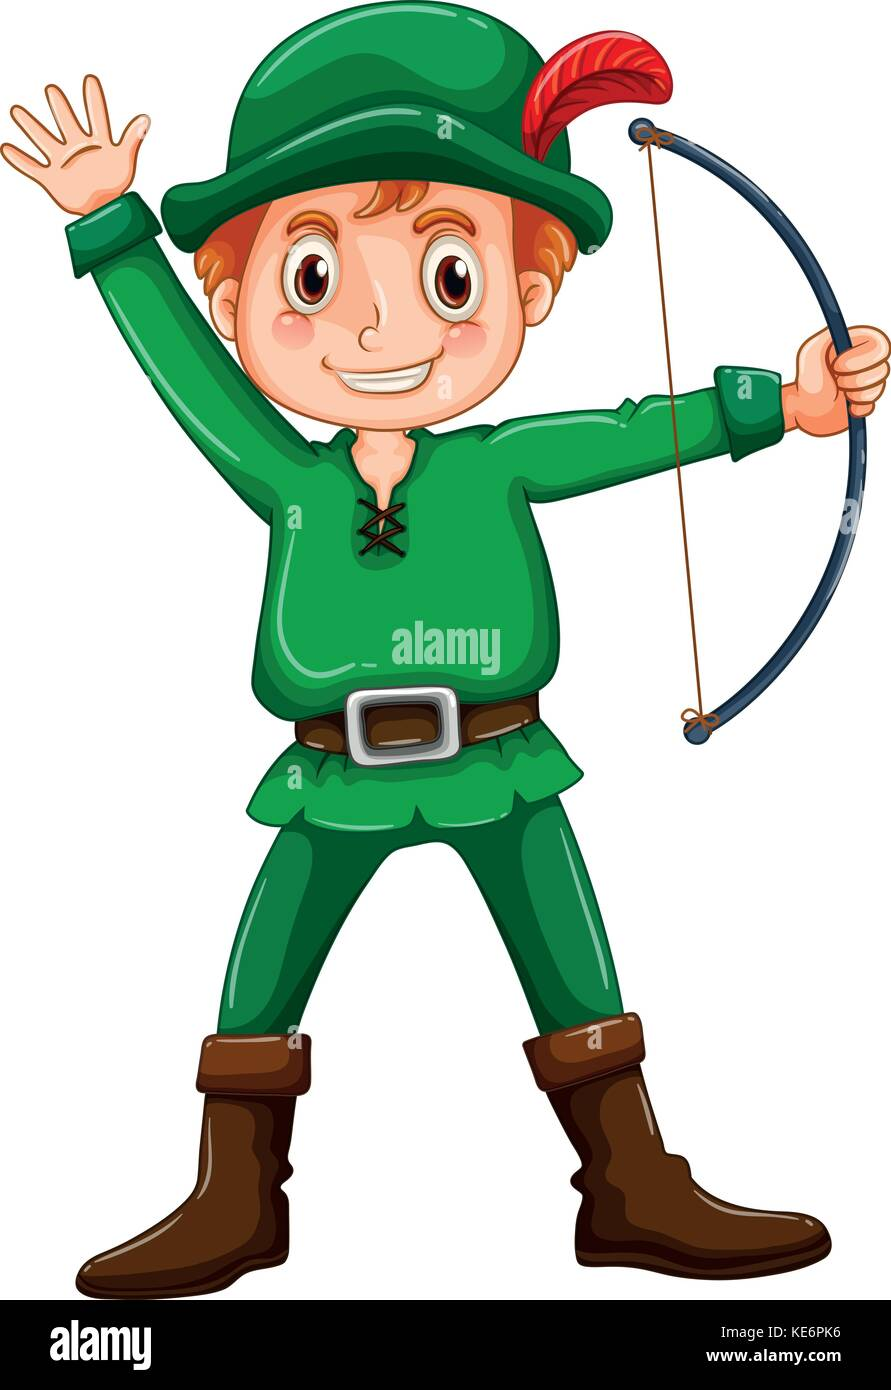 Boy in a robin hood costume on white background  sc 1 st  Alamy & Boy in a robin hood costume on white background Stock Vector Art ...